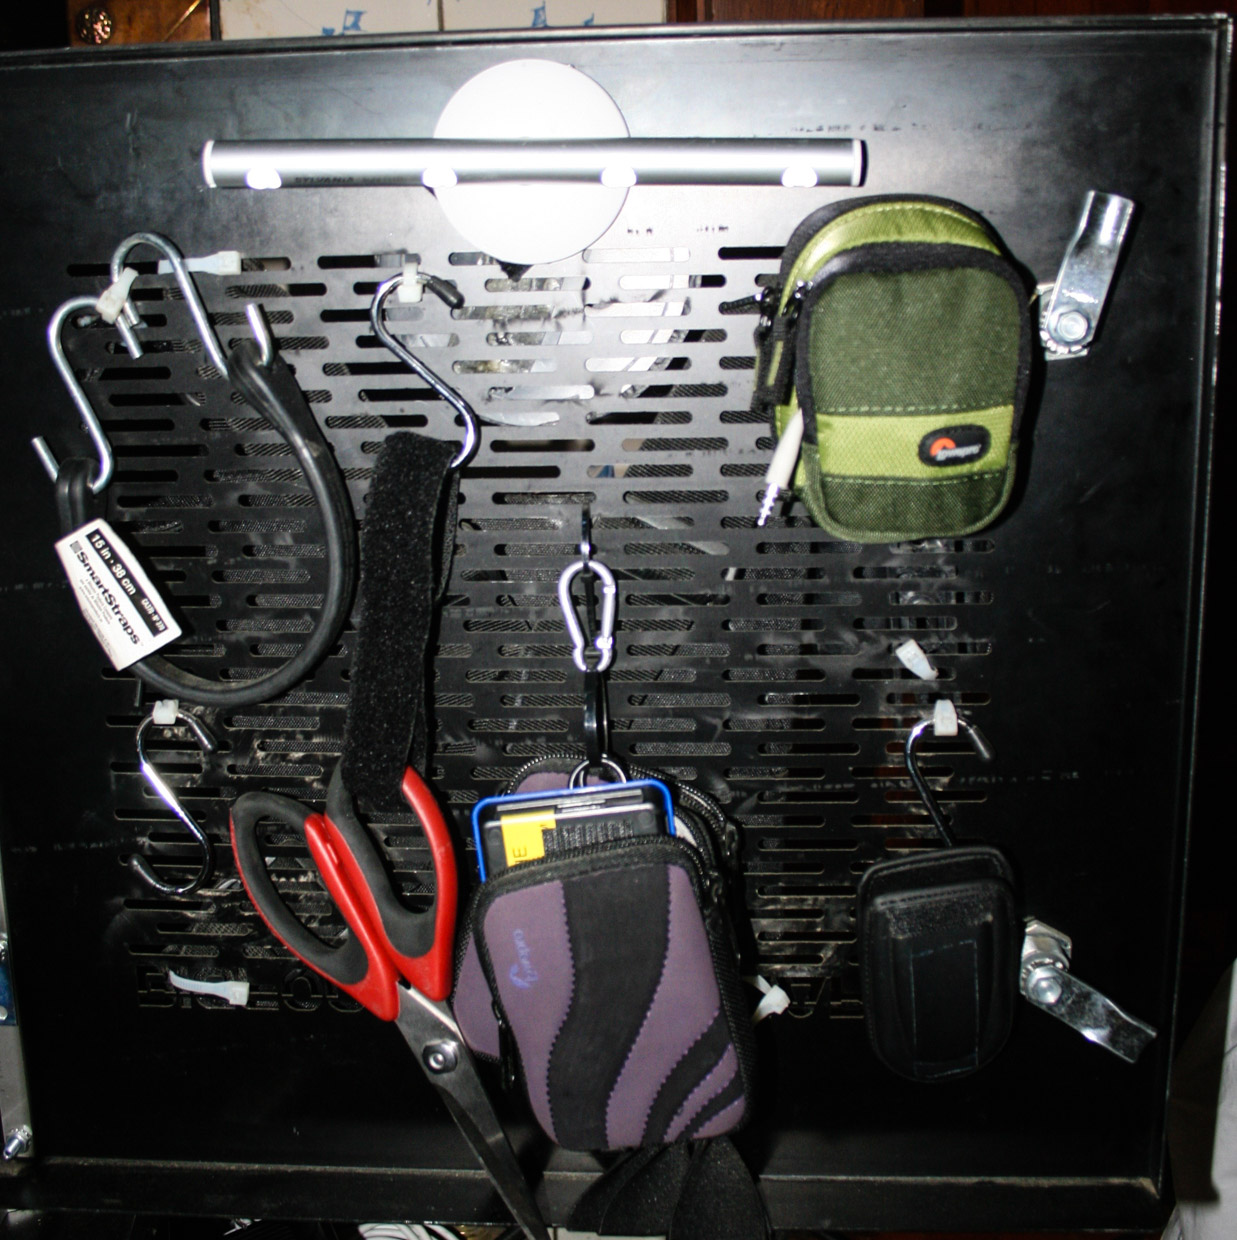 Additional tools hanging from Frank Devine's DIT cart.